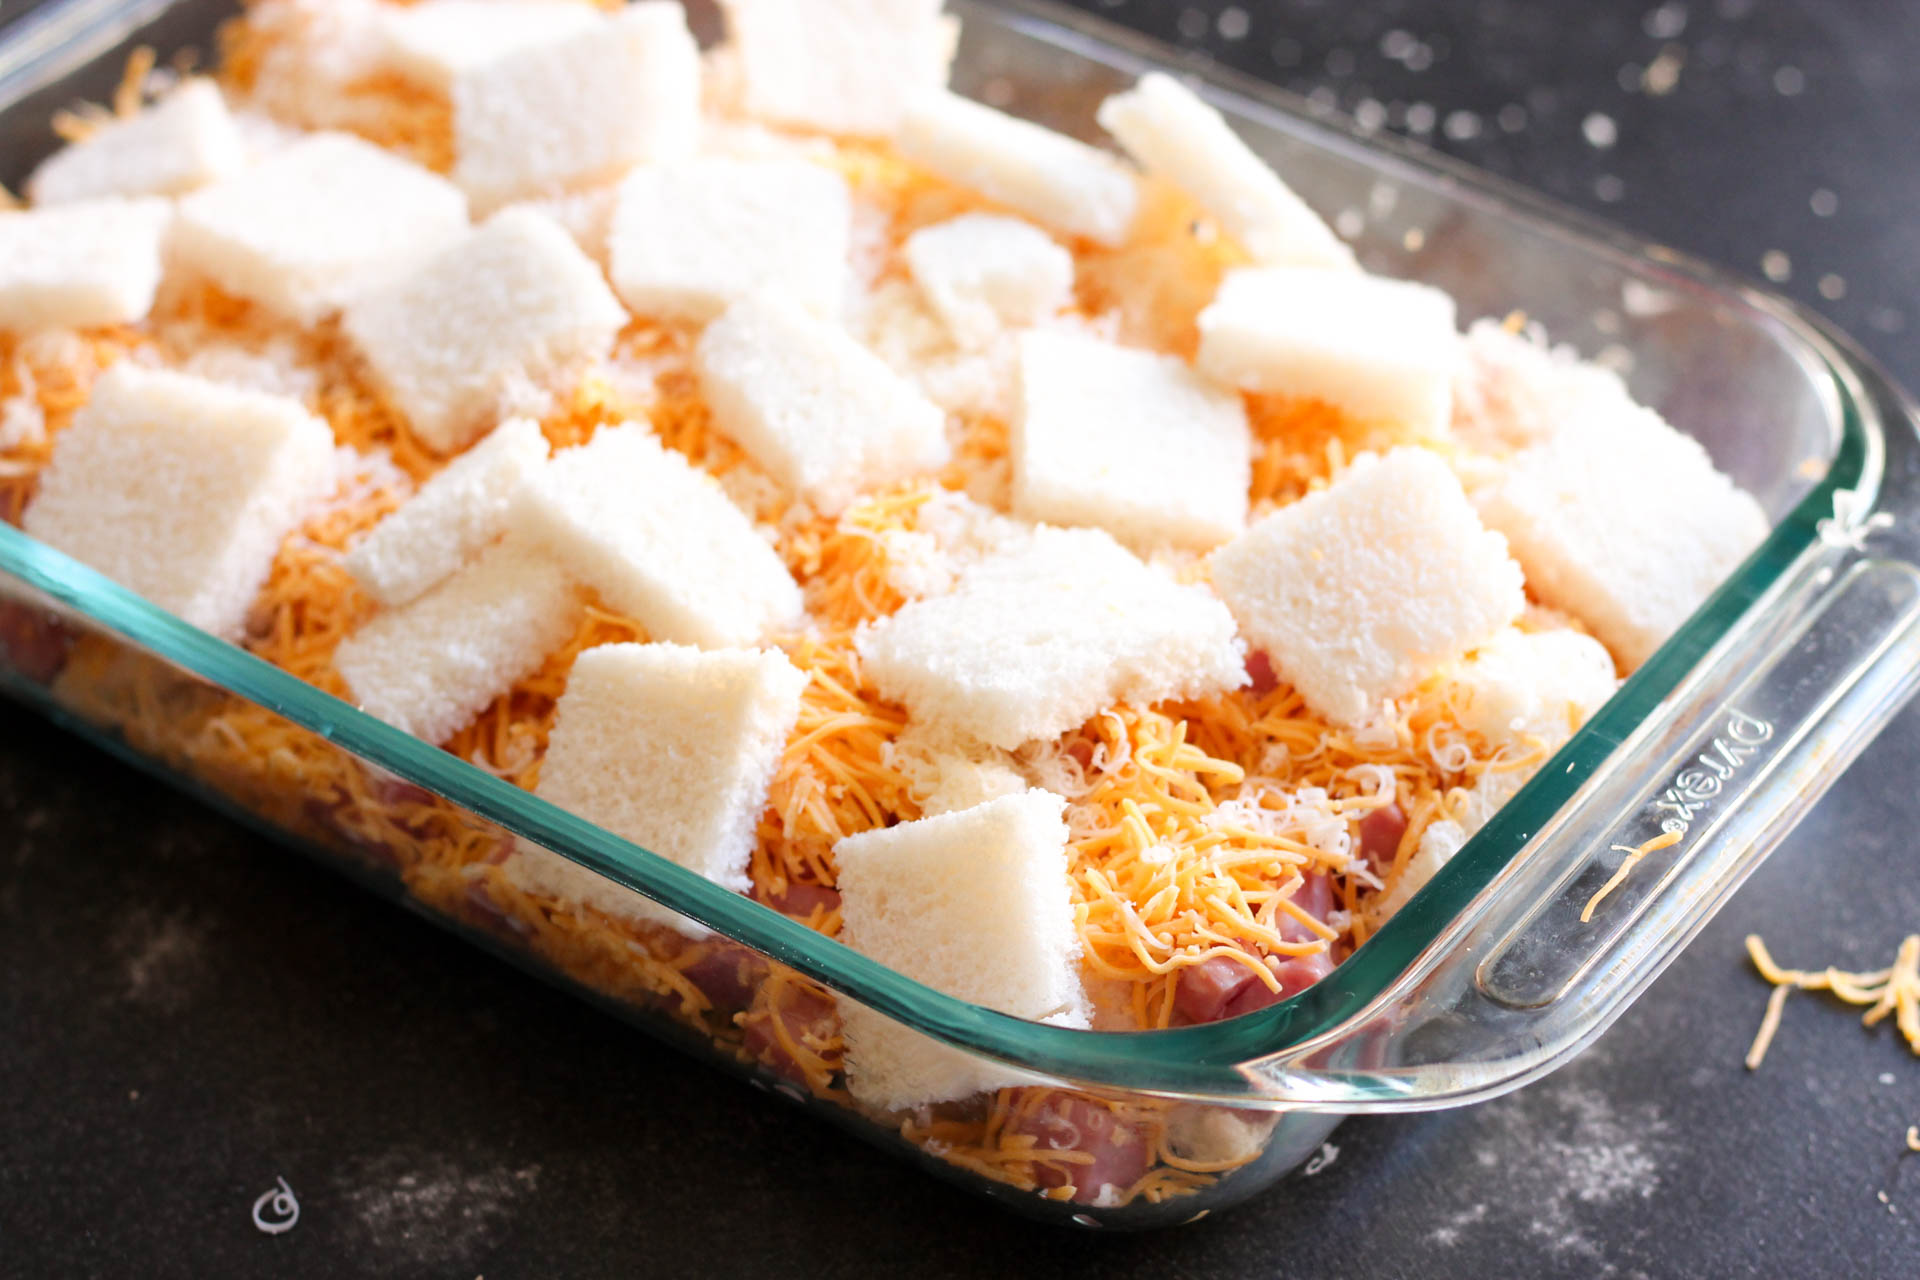 An additional layer of cubed bread for Ham and Cheese Casserole